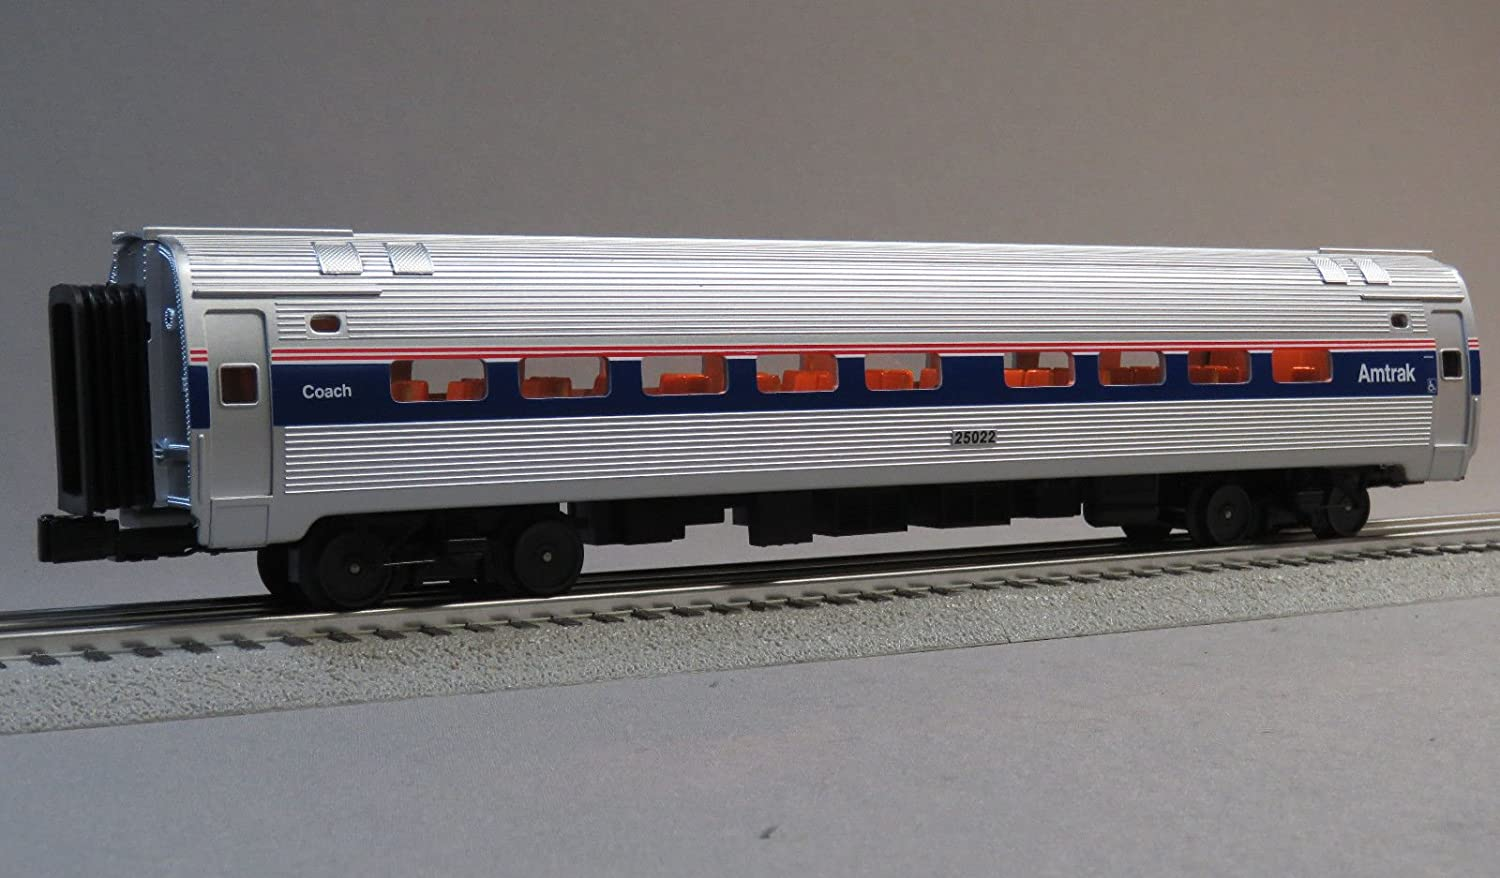 MTH Rail King Amtrak PassengerコーチCar # 25022 Oゲージ B07B2641RK